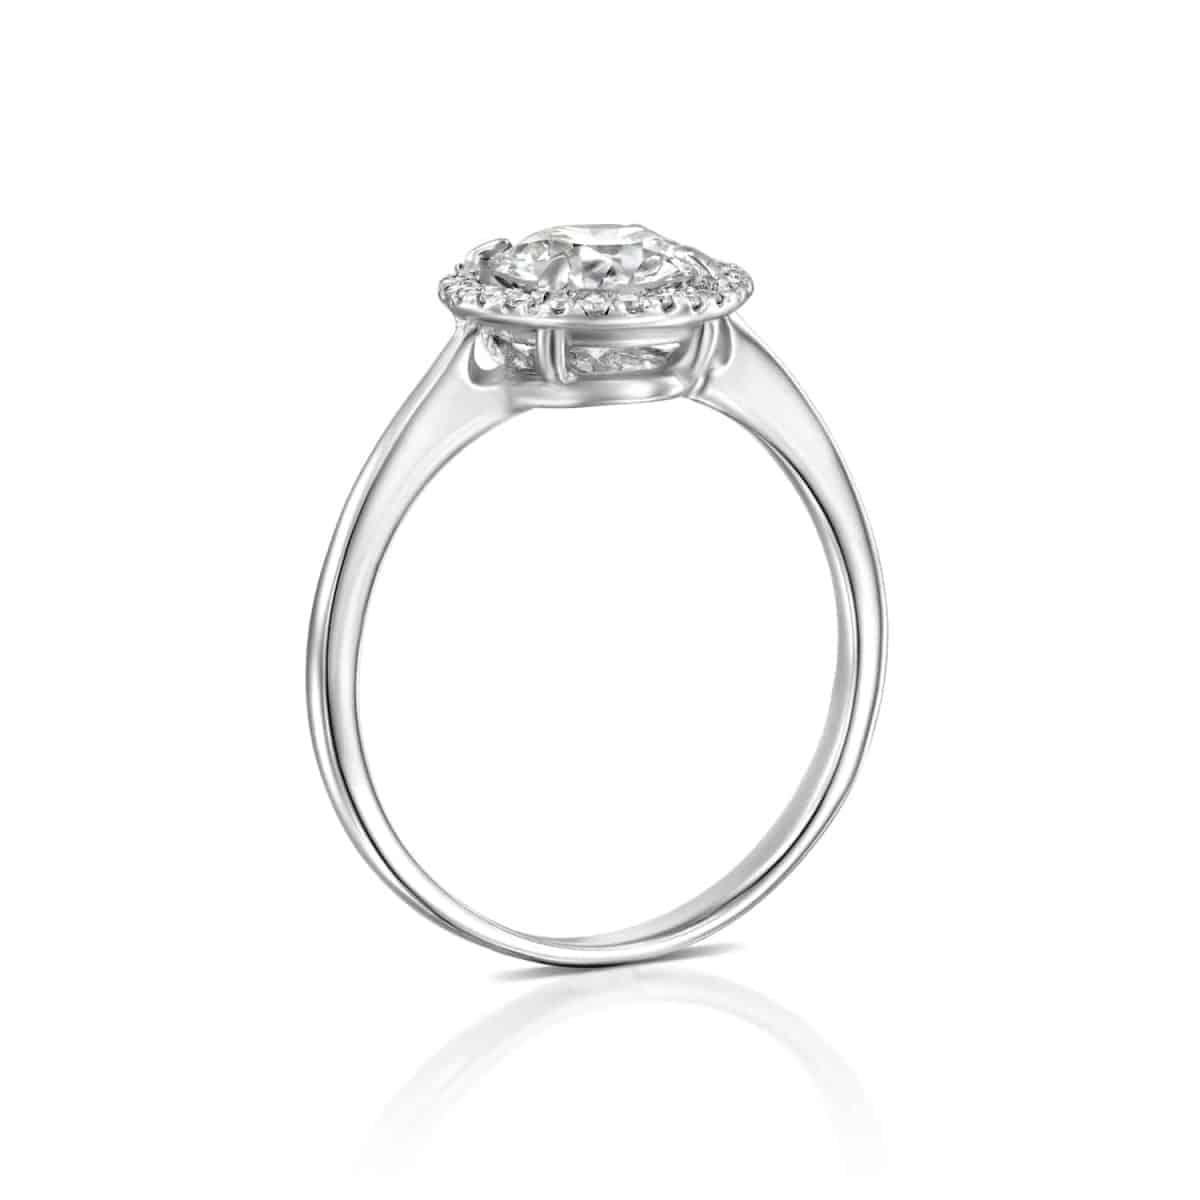 Lisa - White Gold Lab Grown Diamond Engagement Ring 1.01ct. - standing